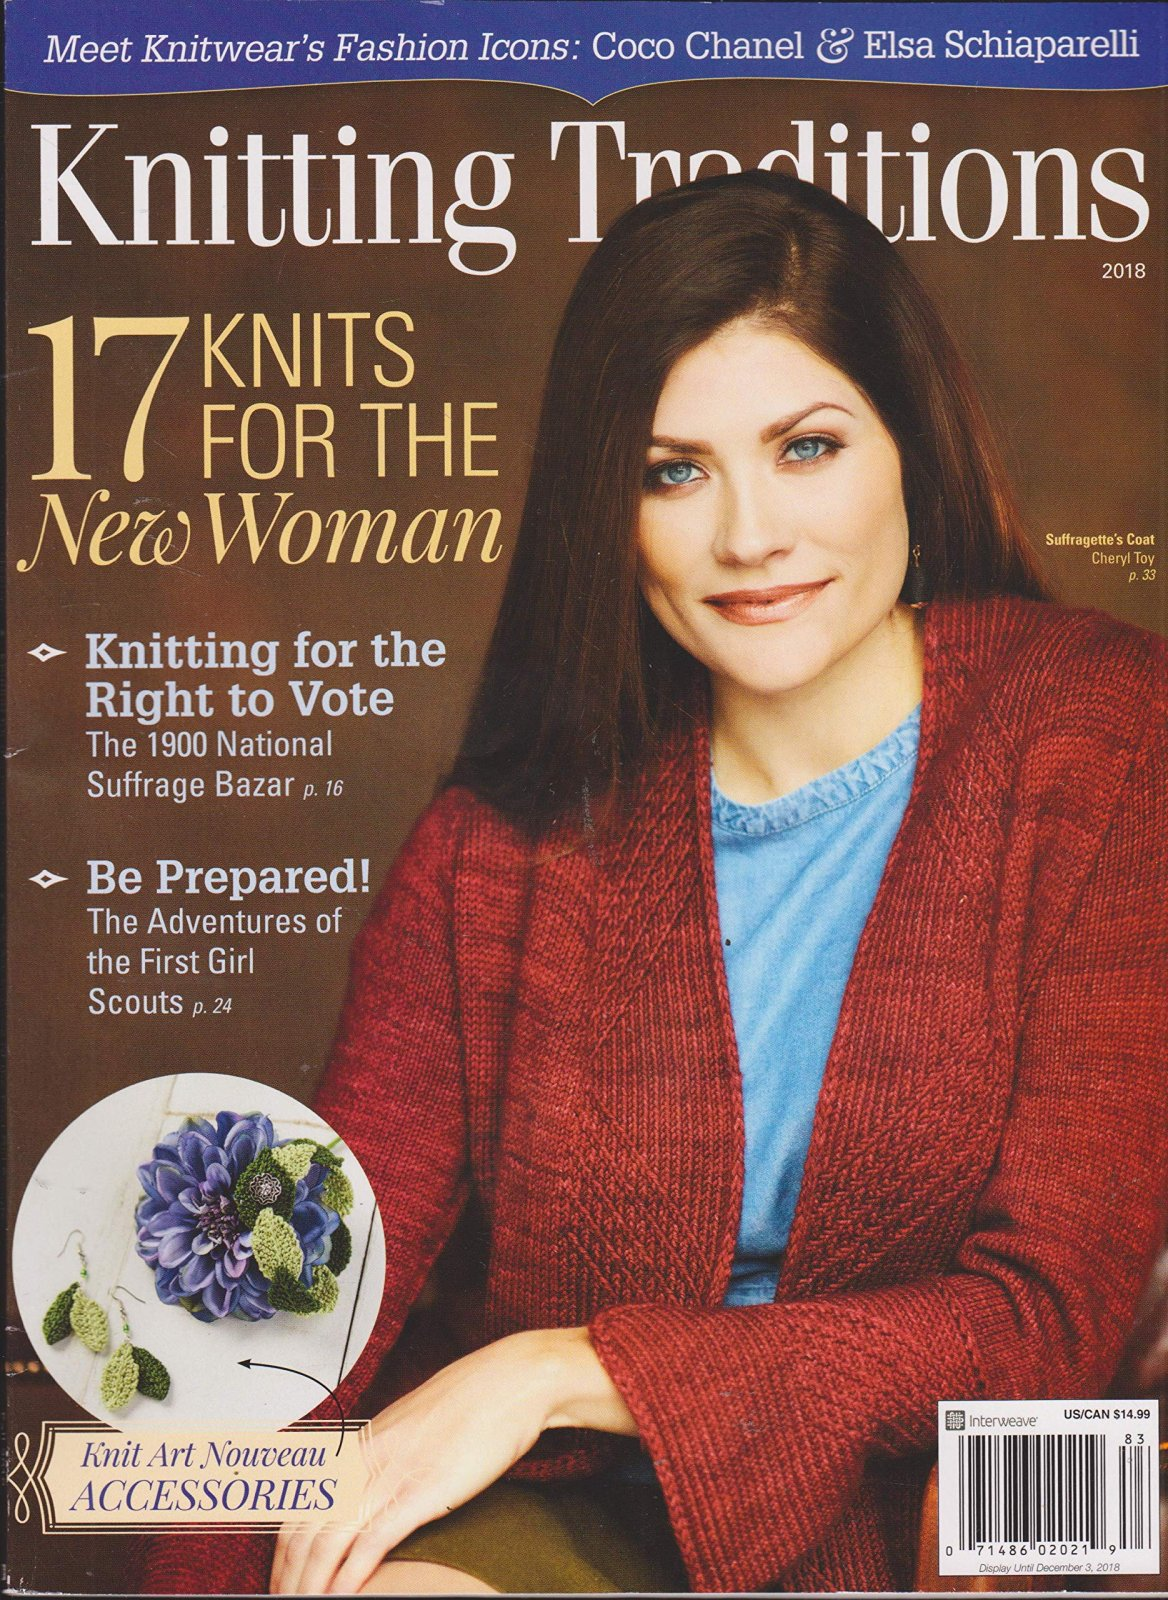 Knitting Traditions Magazines